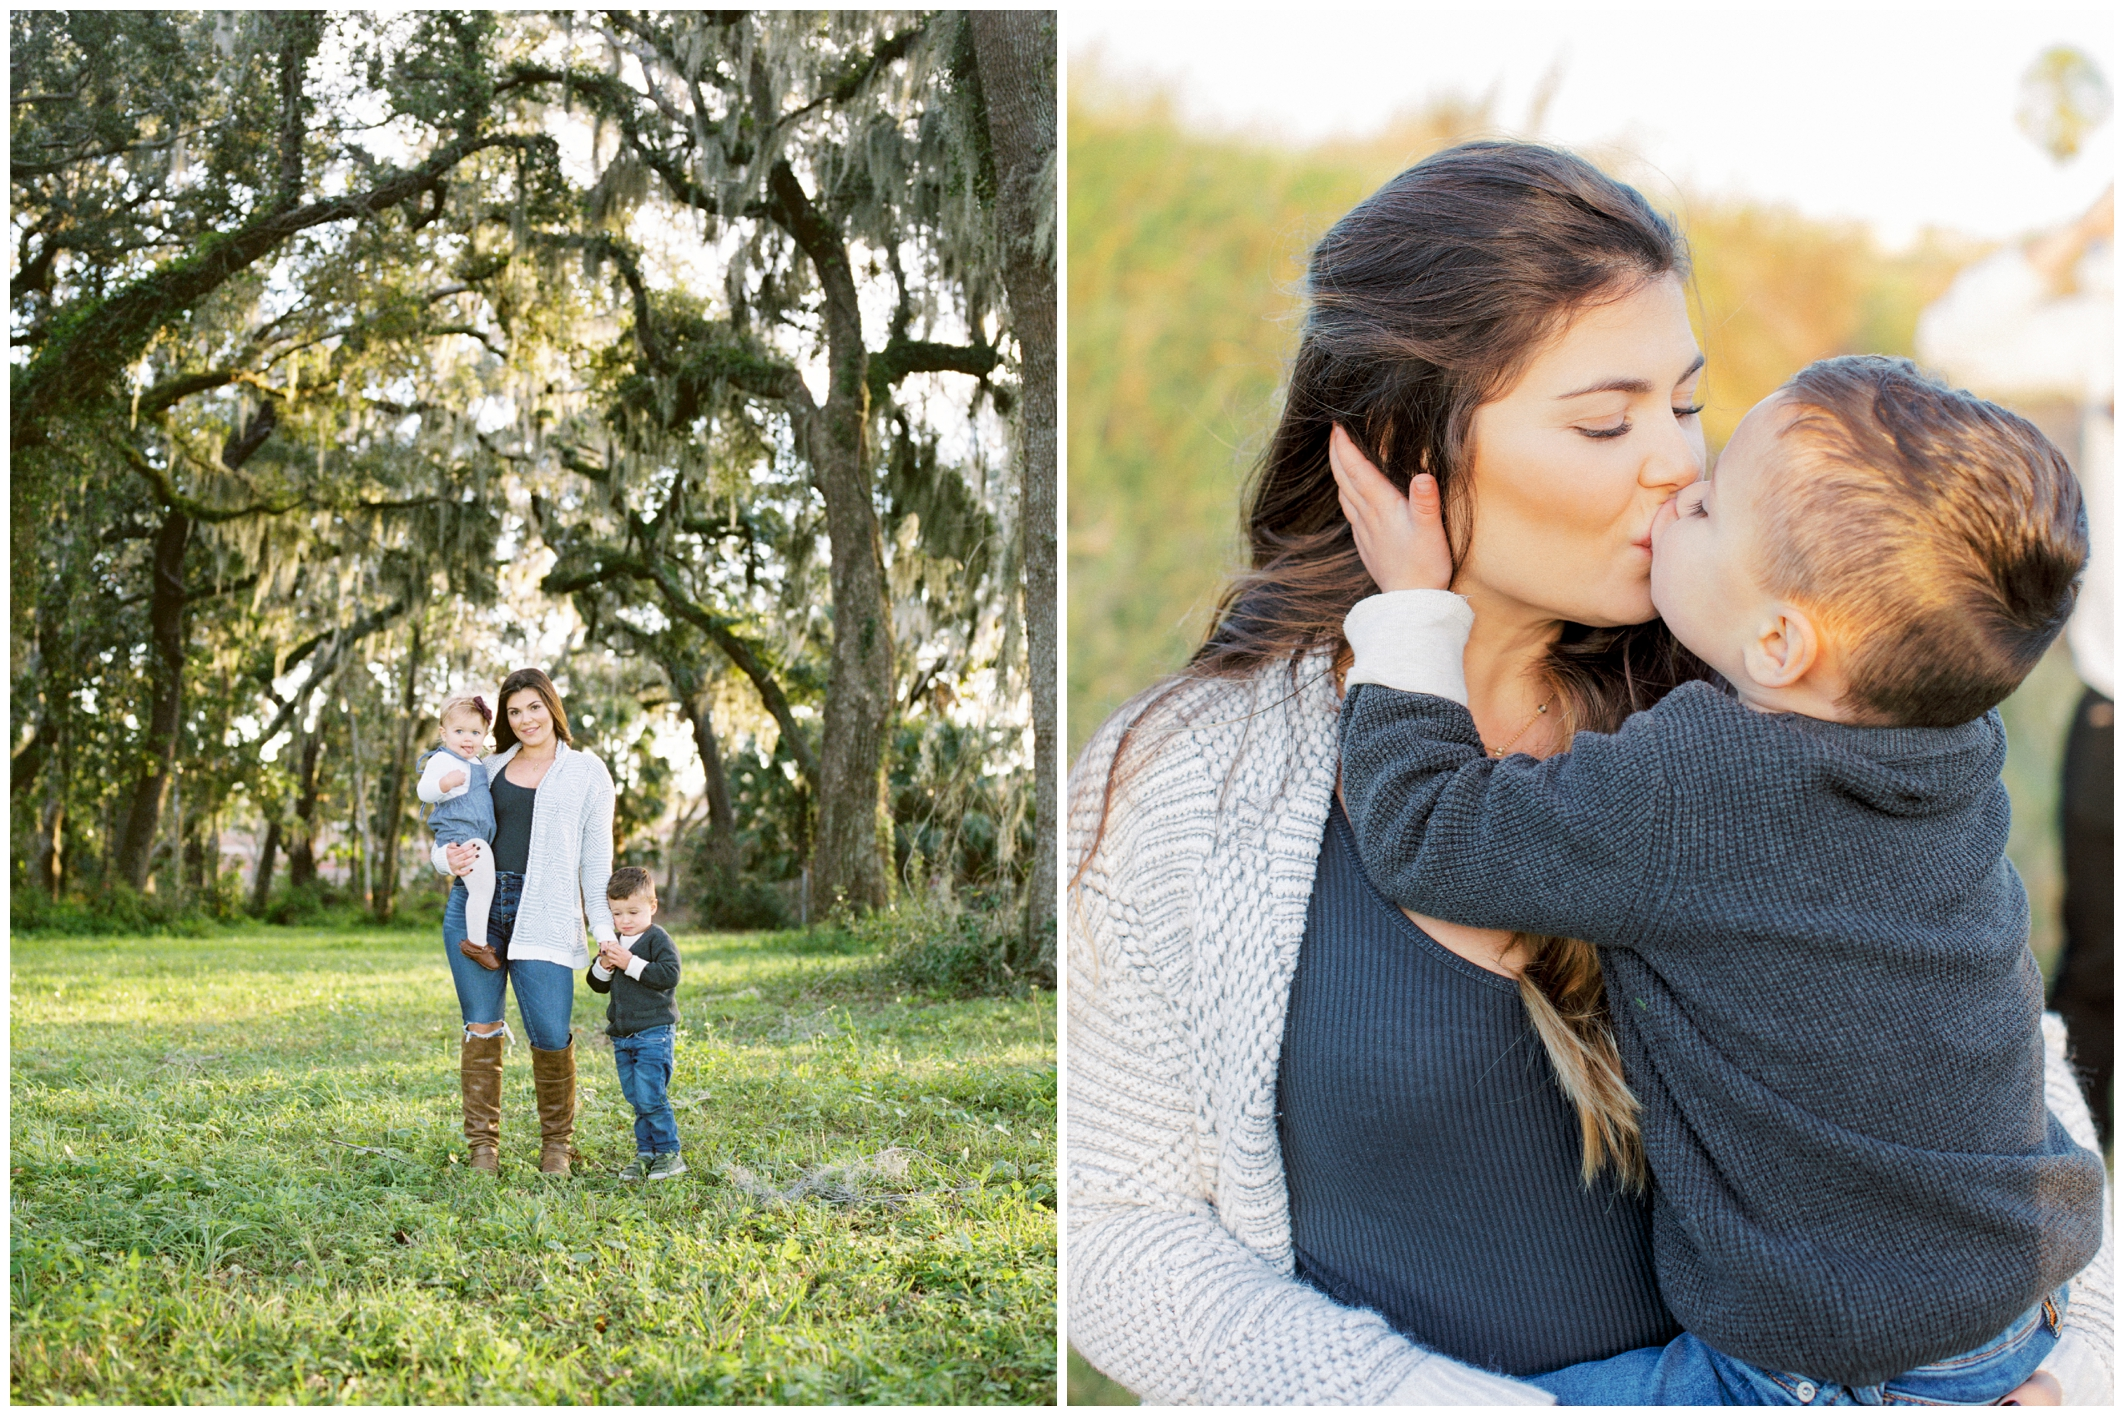 Autumn, Willa, and Wyatt | St. Augustine, Florida